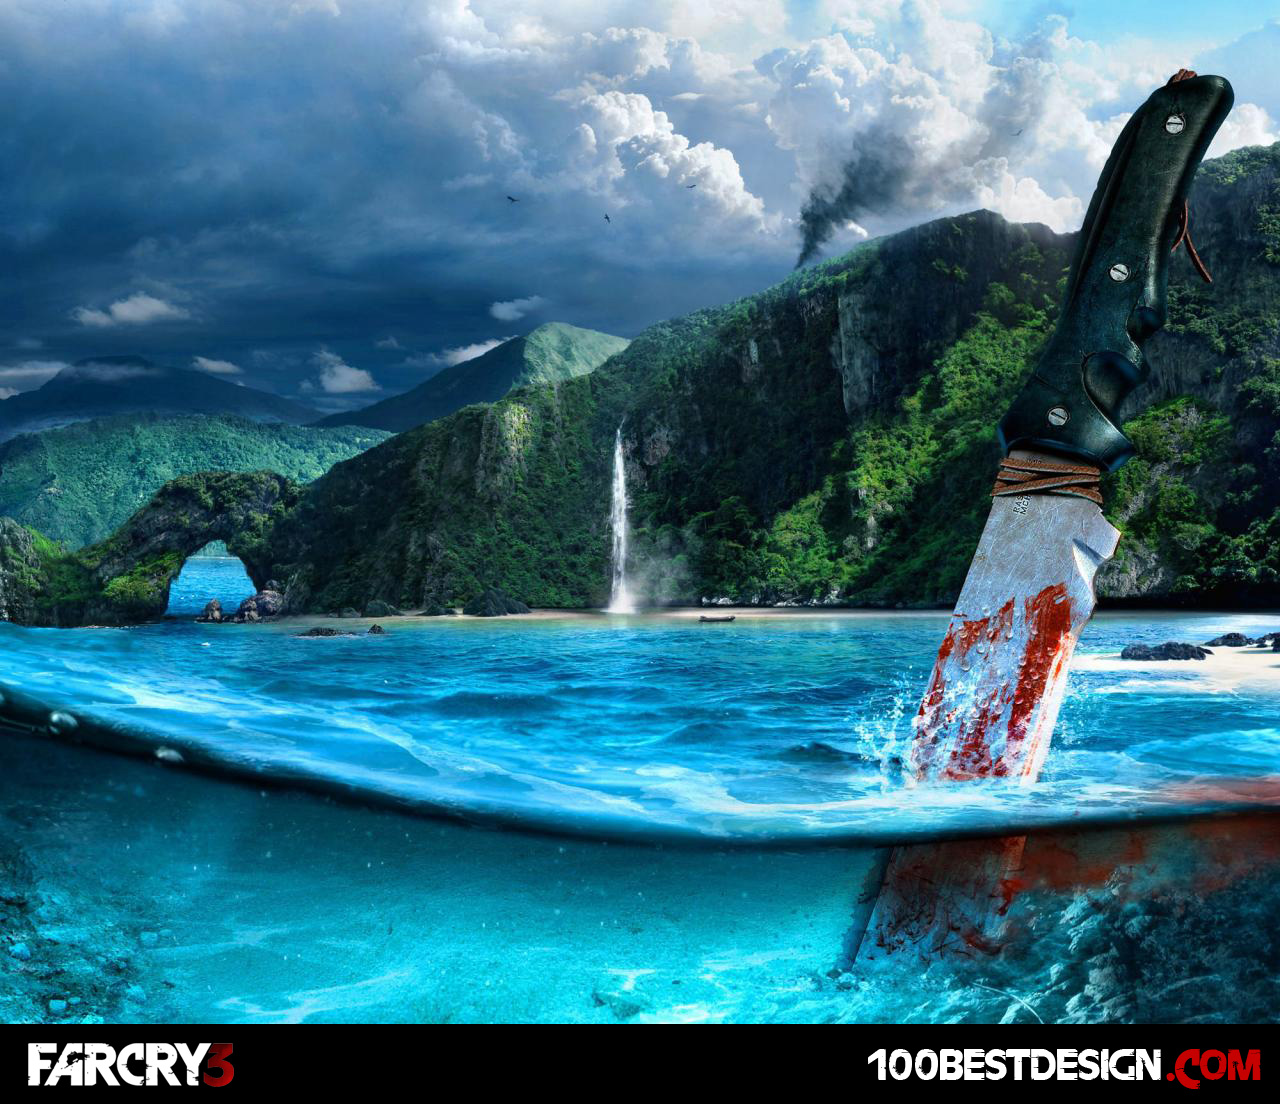 100 Best Far Cry 3 HD Wallpapers And Backgrounds 100 Best Design 1280x1104